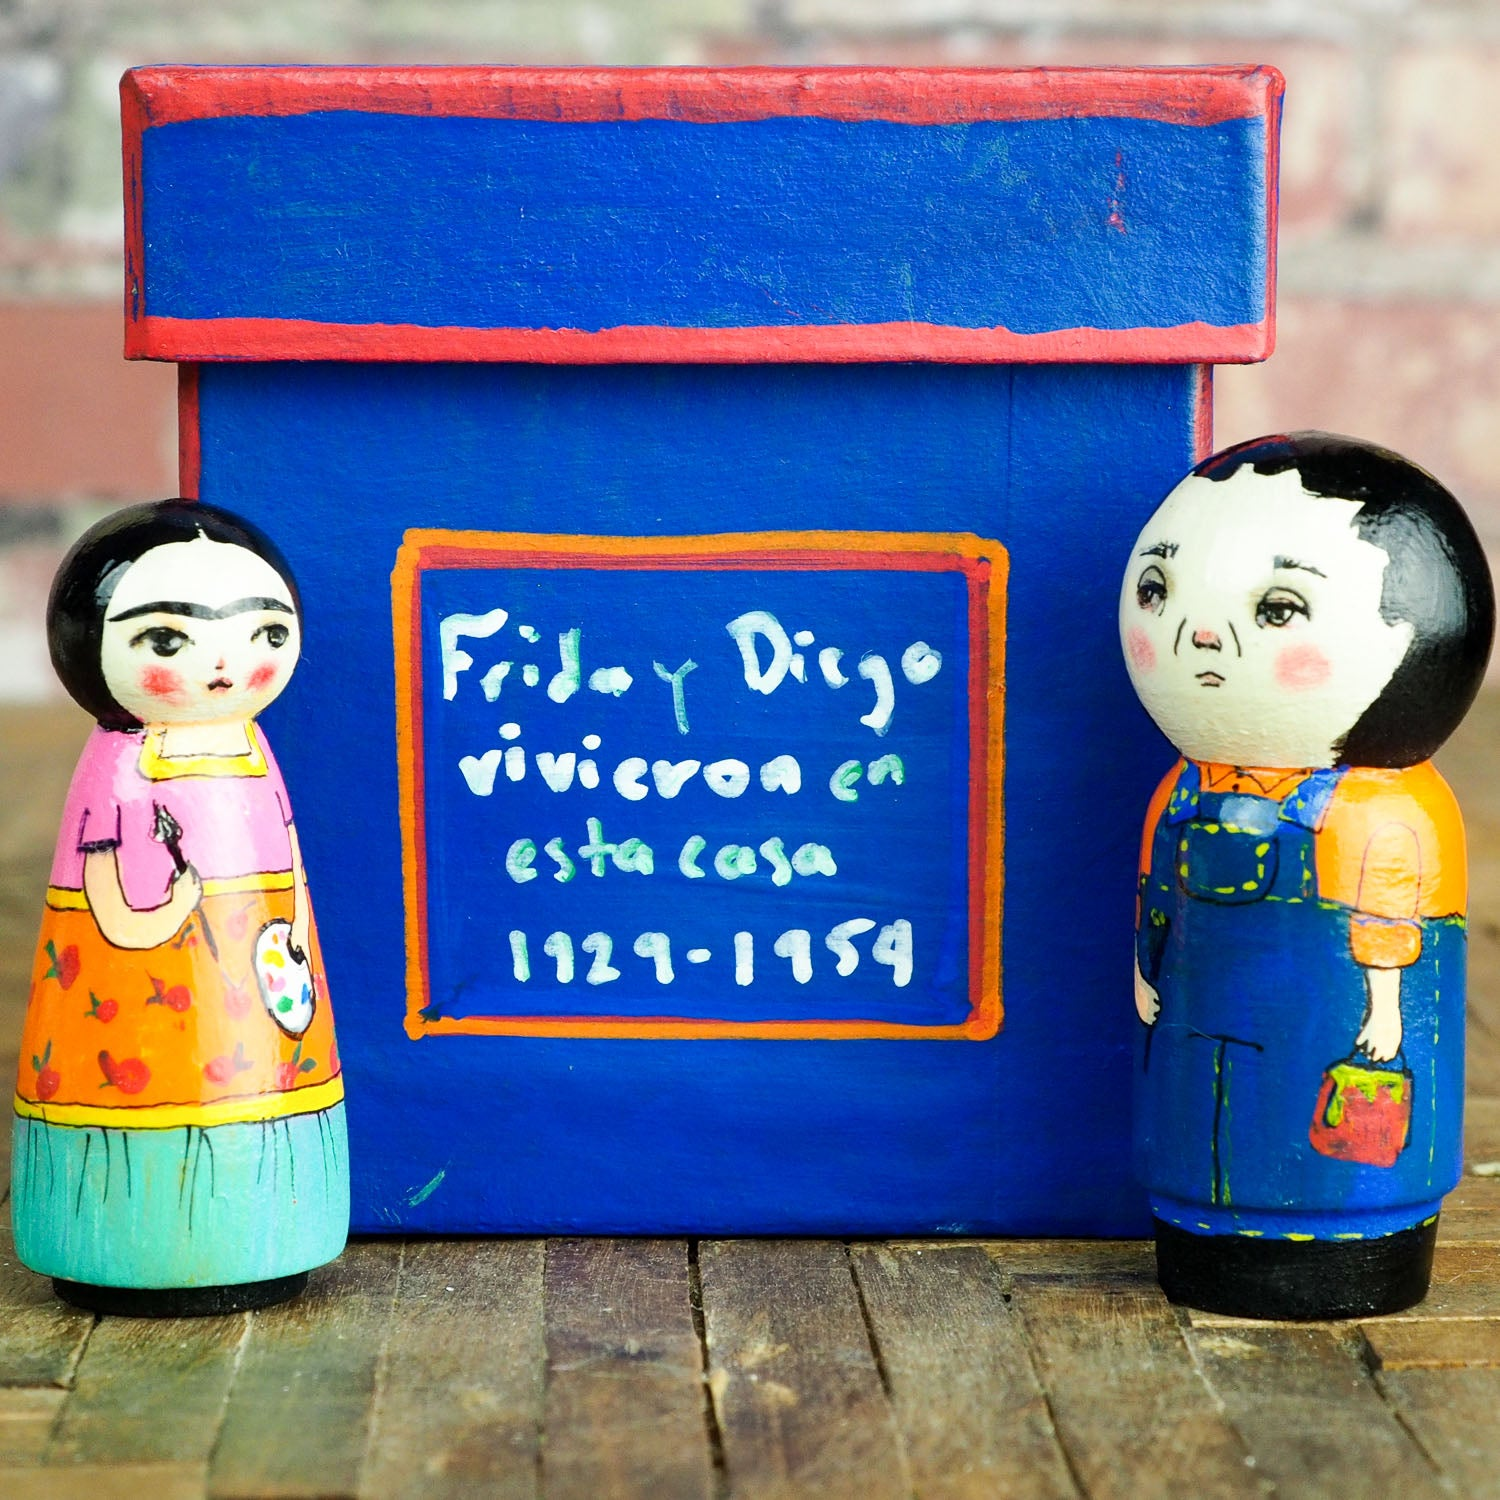 Frida y Diego - Wood Kokeshi art dolls by Danita, Miniature Dolls by Danita Art